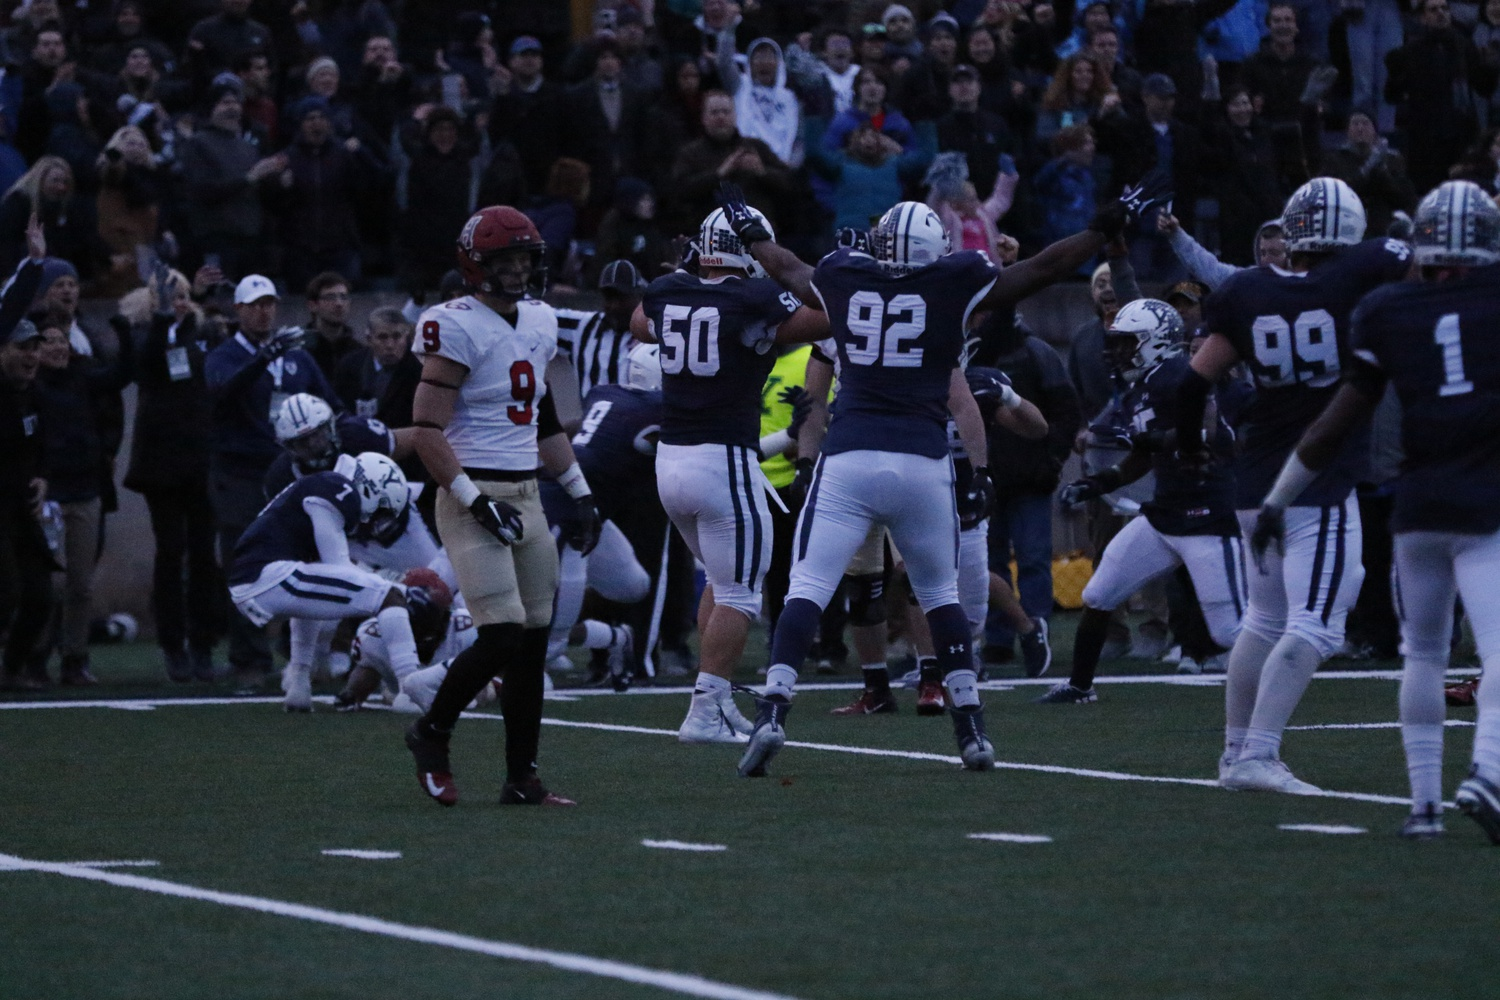 Yale pulled out its heart-wrenching comeback amidst the cover of darkness thanks to the Yale Bowl's lack of lights.